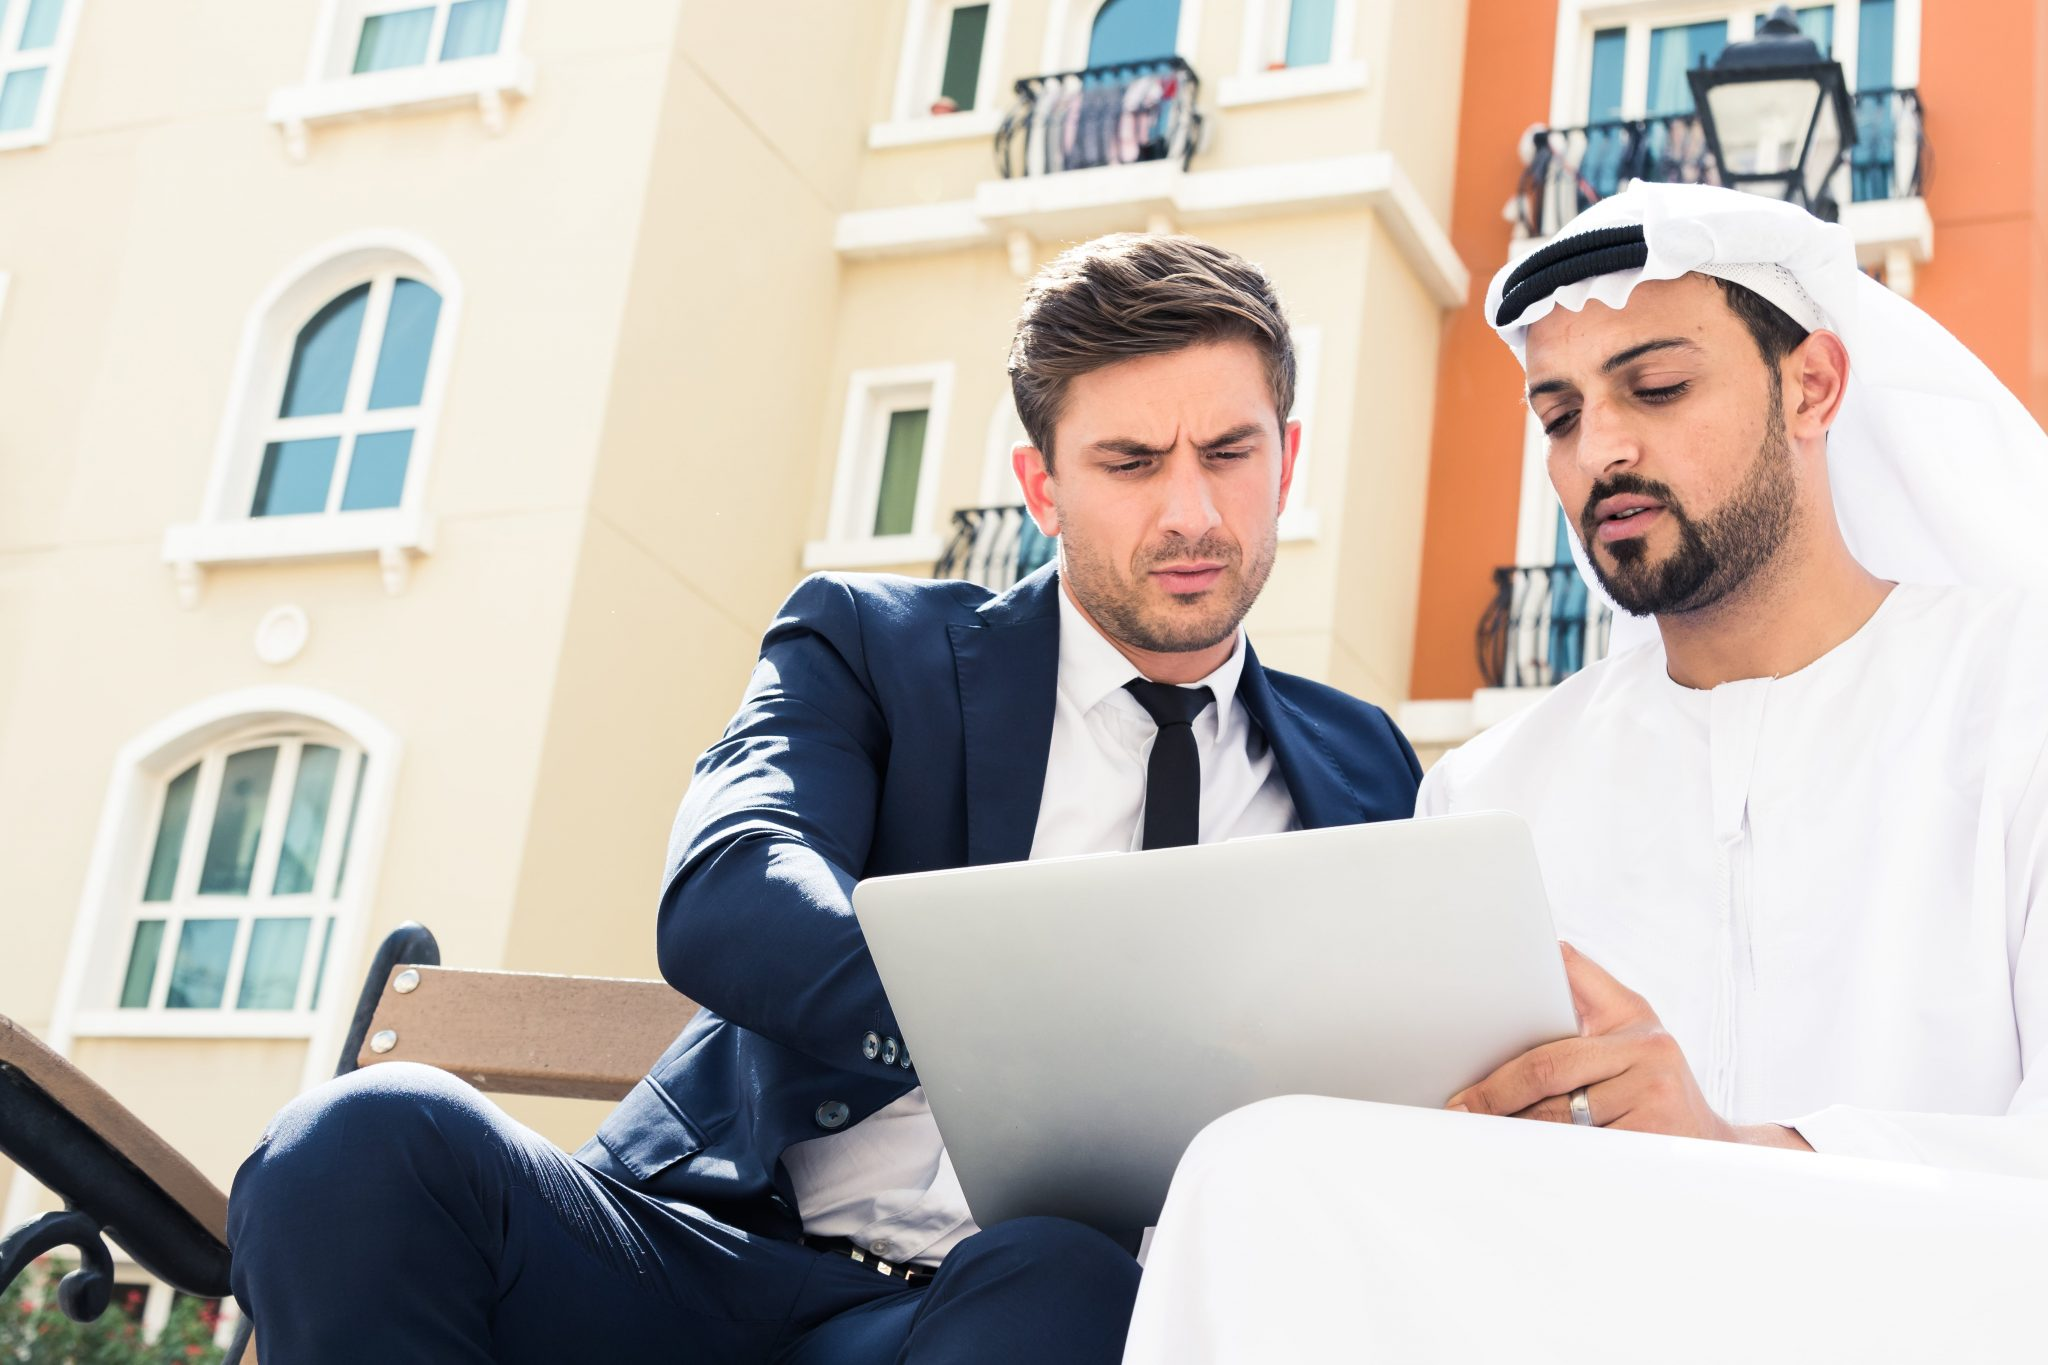 Change your business partner in Dubai for the better